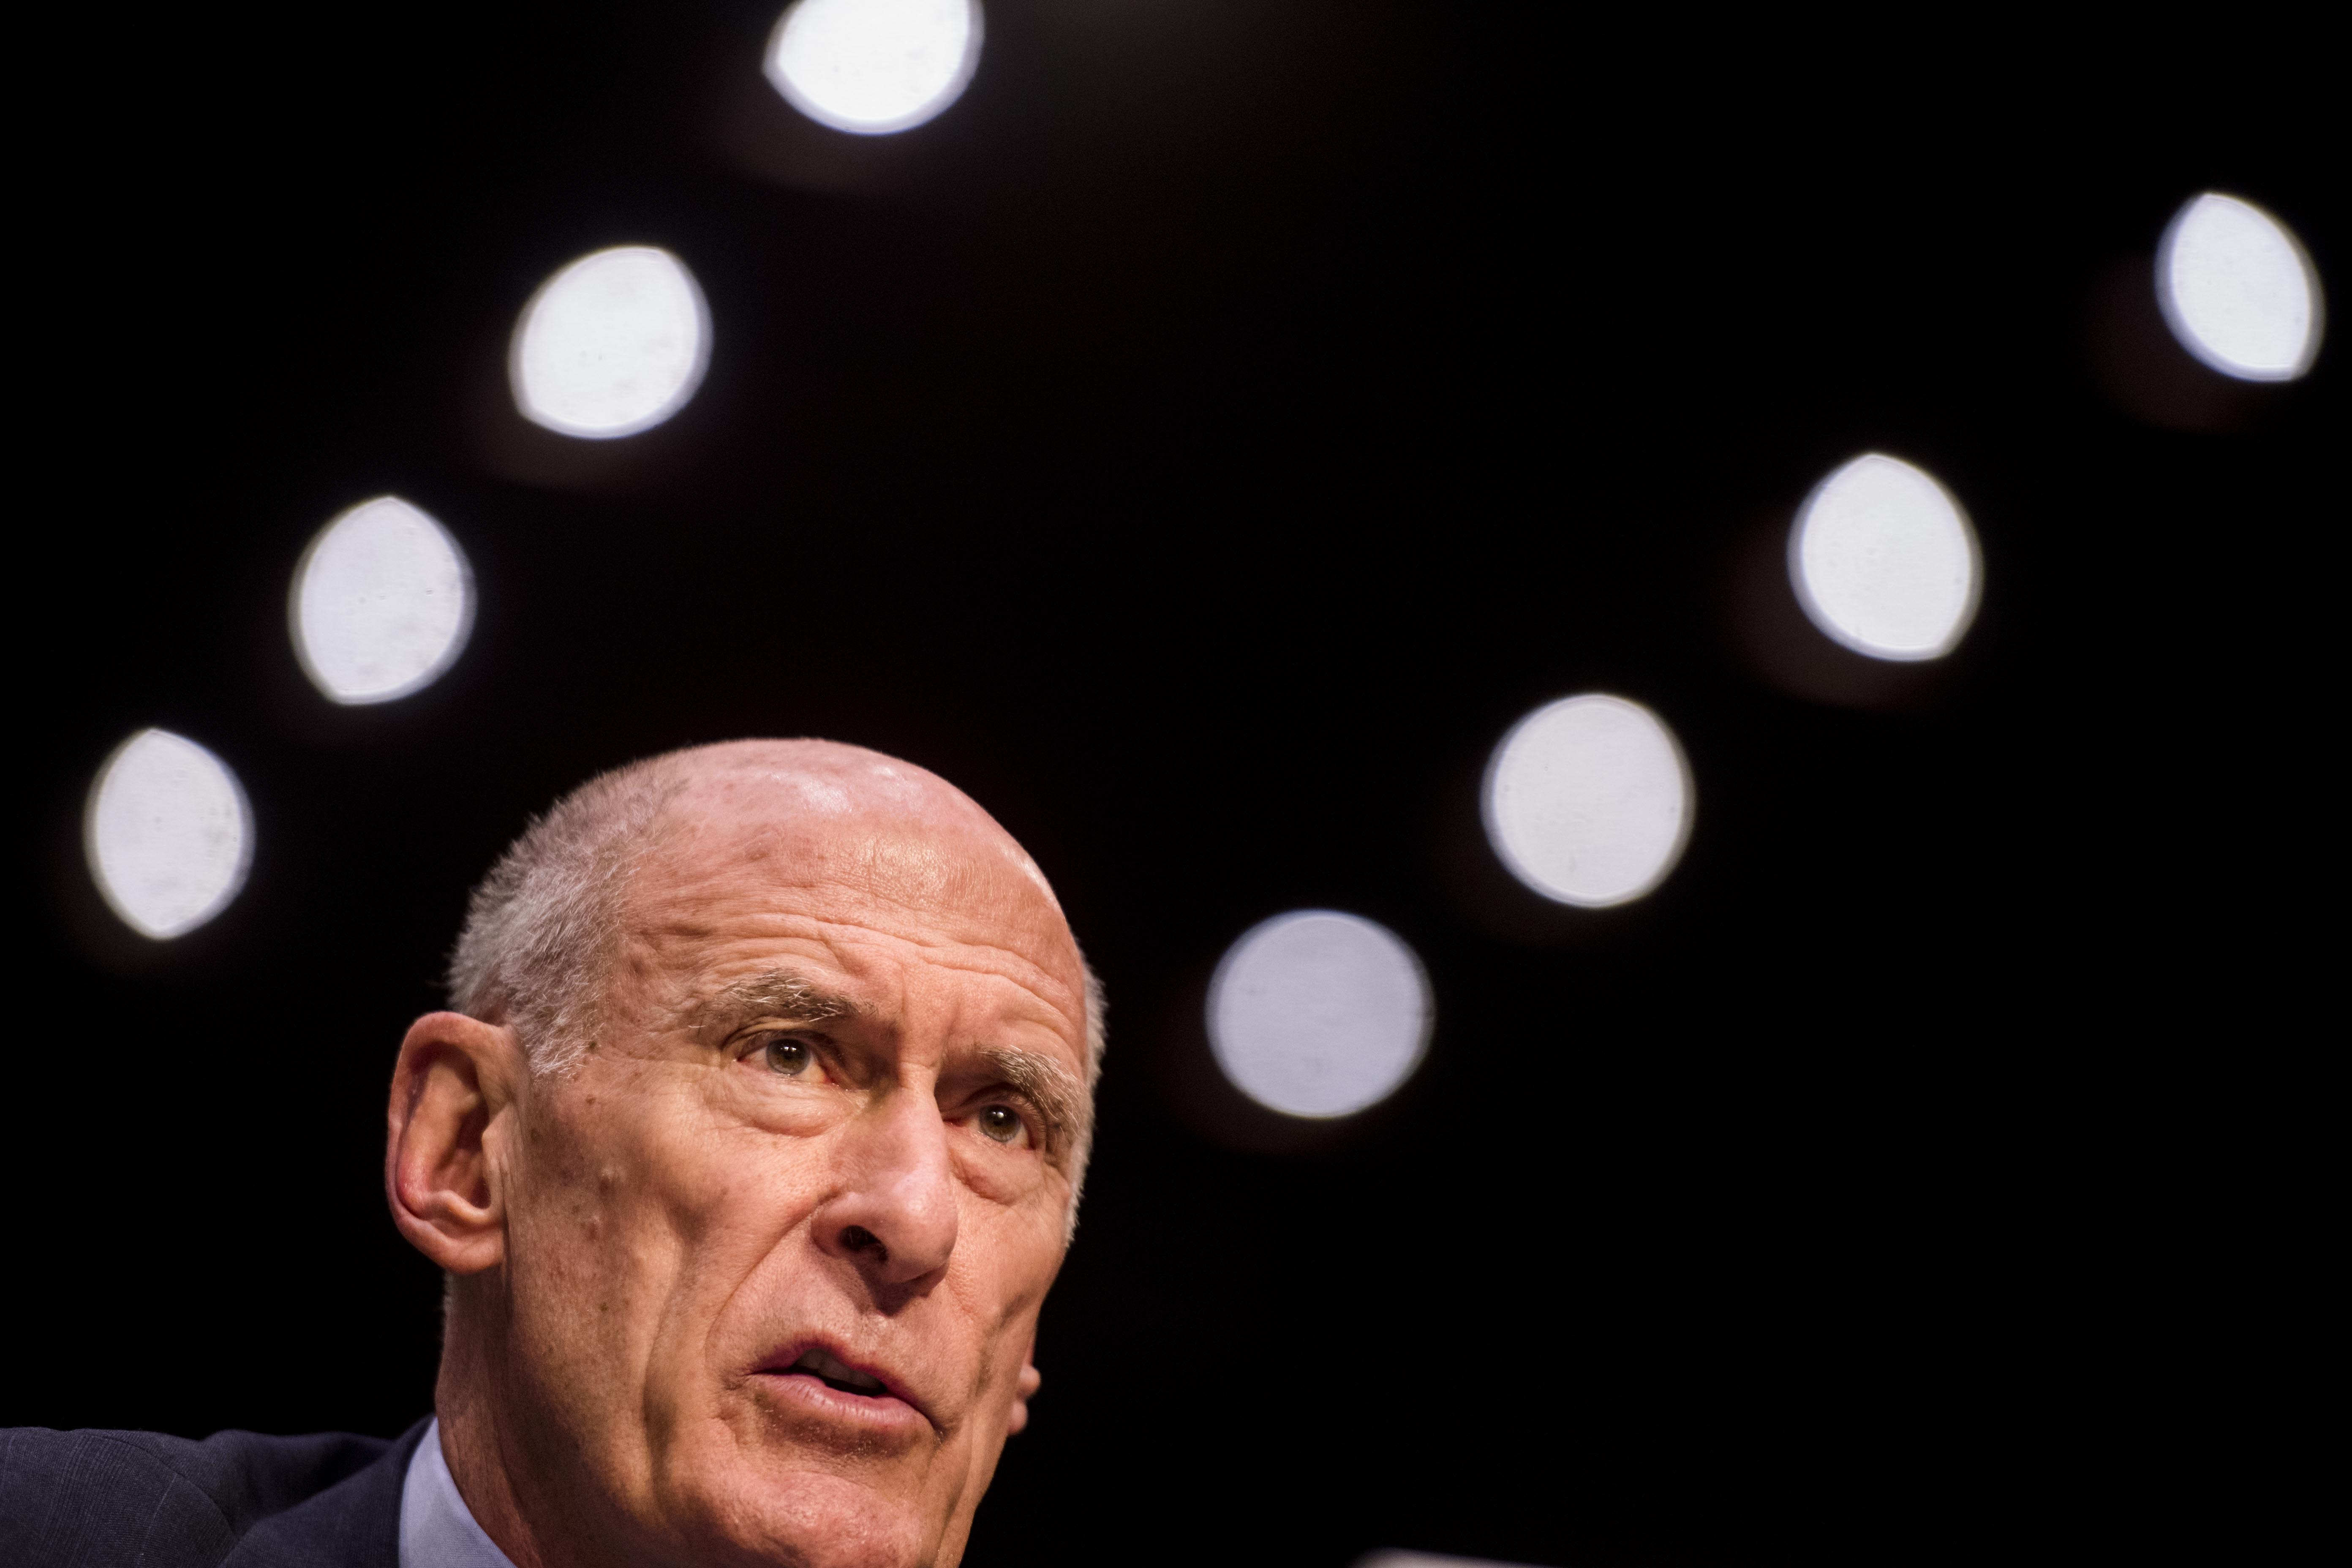 Director Of National Intelligence Daniel Coats and Director of Defense Intelligence Agency Lieutenant General Robert Ashley